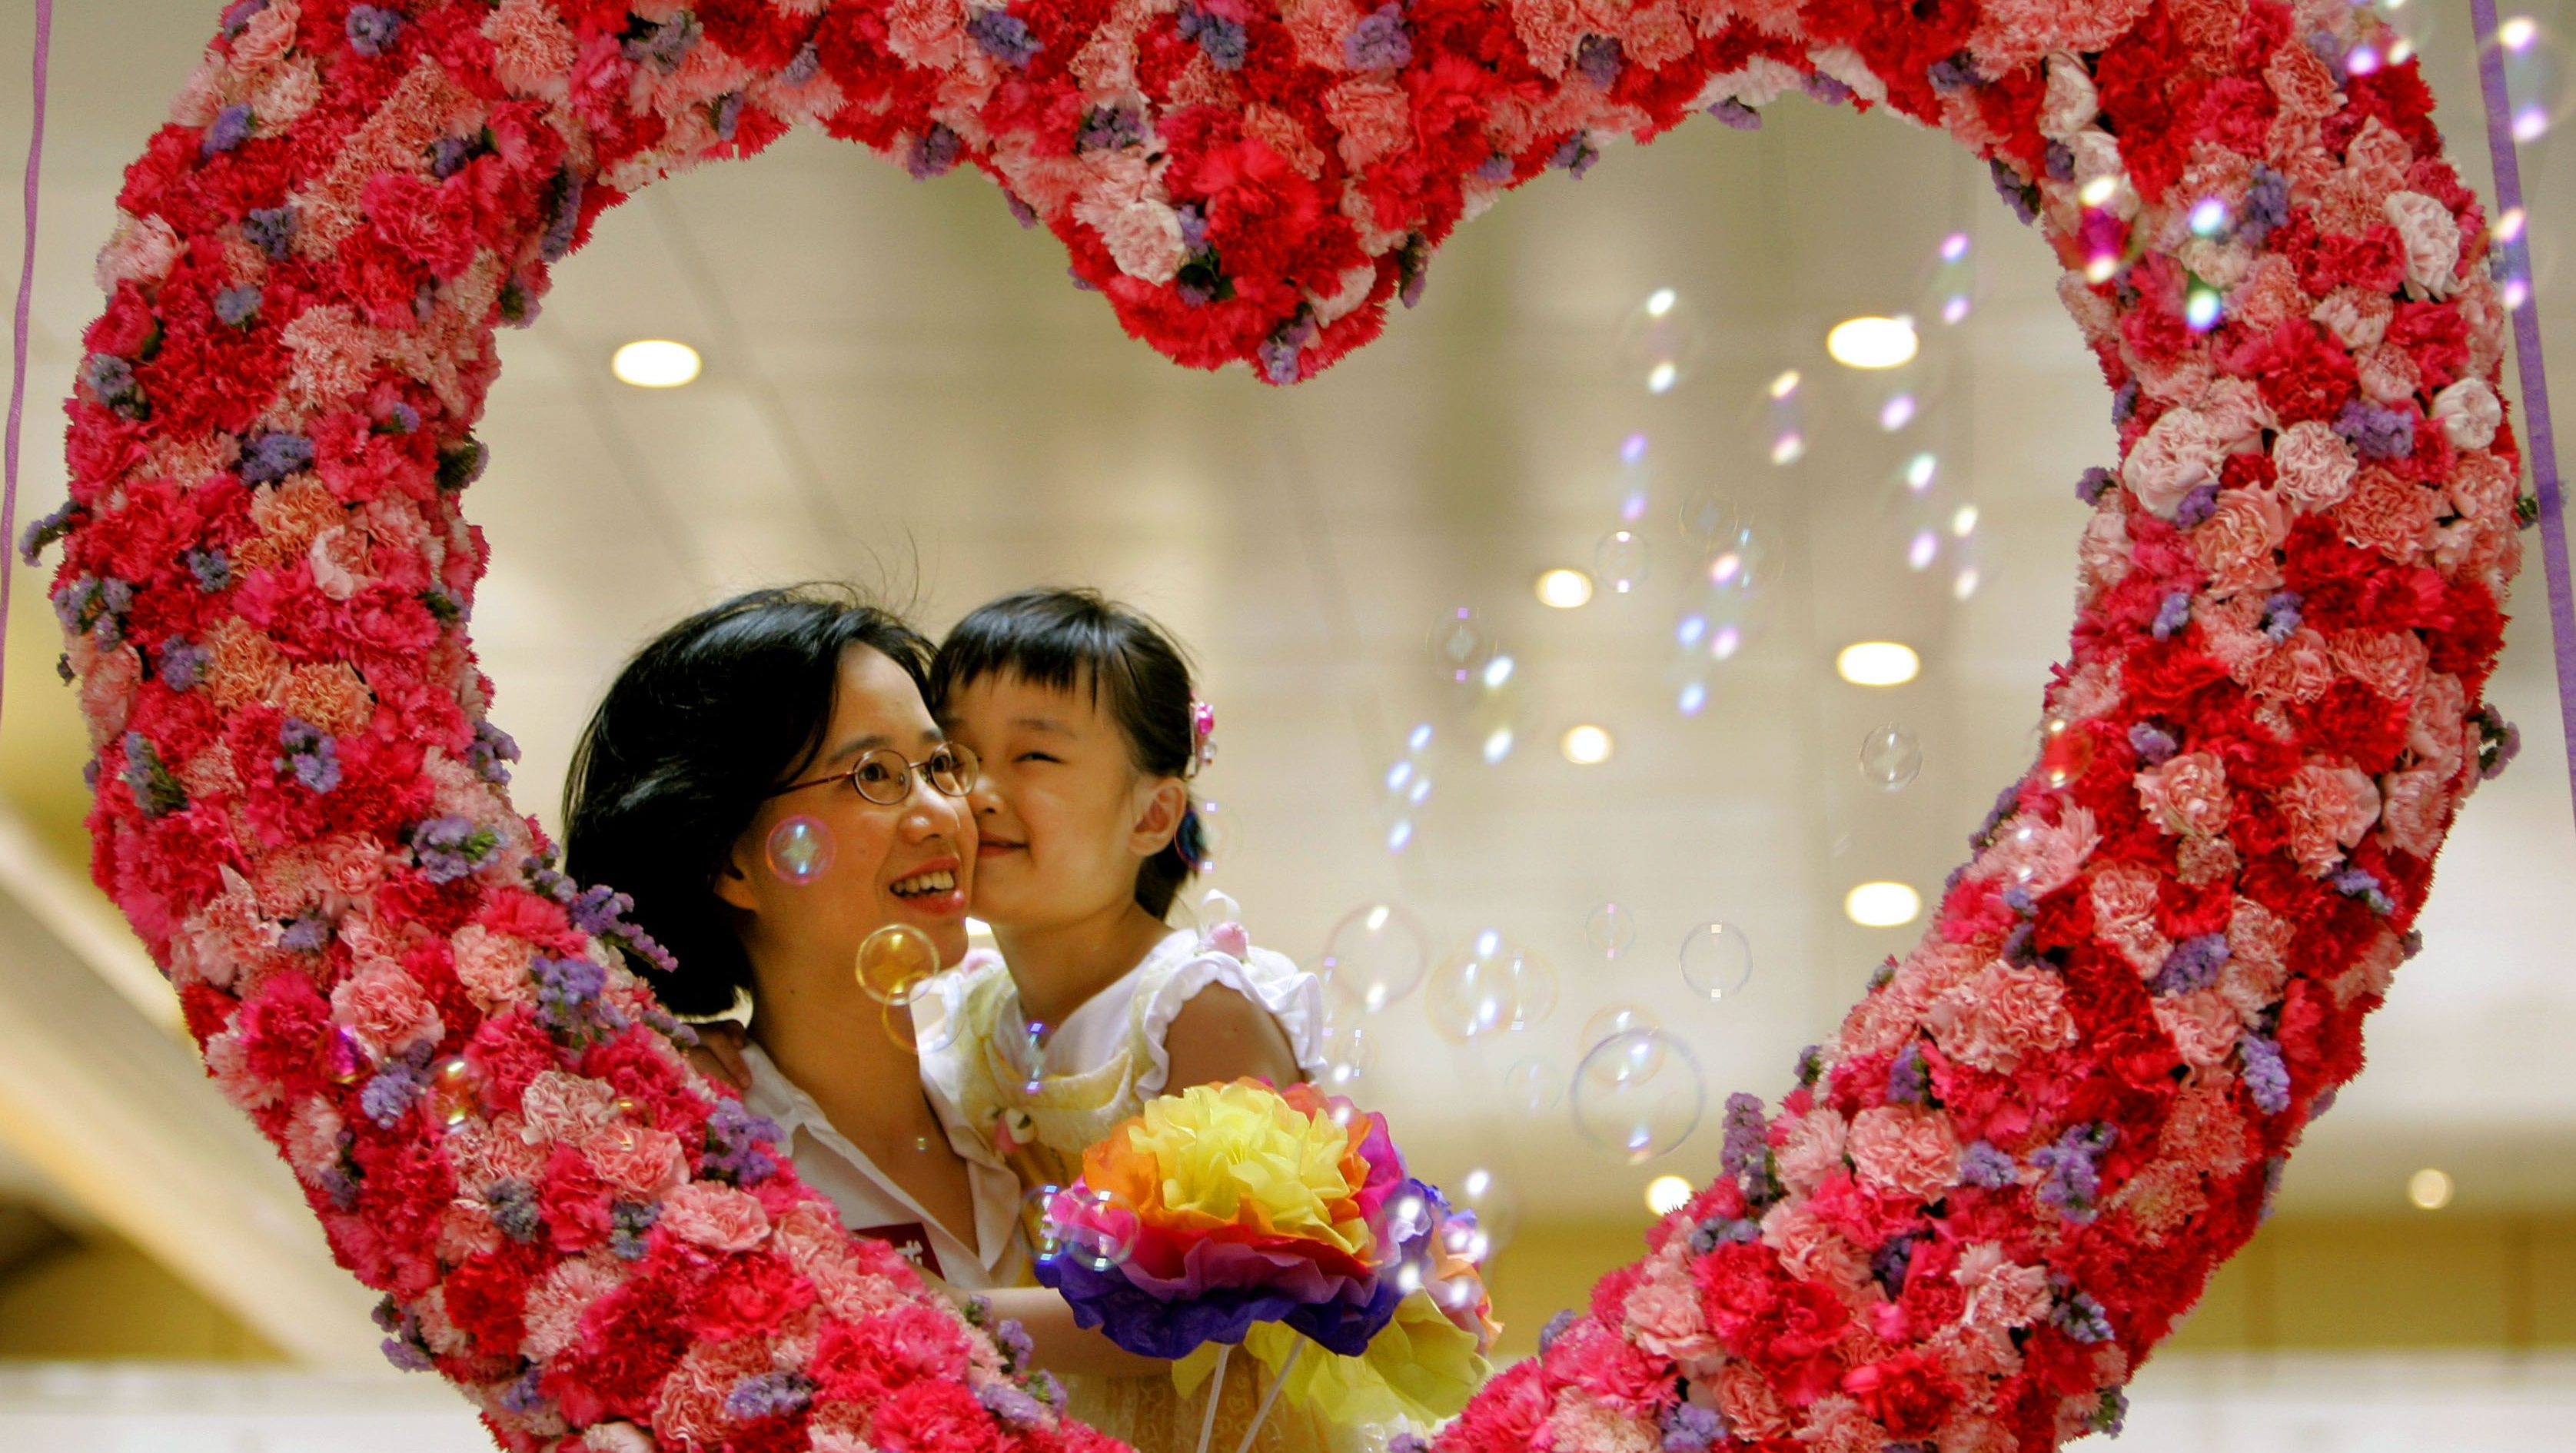 A mother, Beatrice Watt, poses with her daughter Whitney Watt behind a heart shape decoration assembled by 1,000 carnations as celebrating the upcoming mother's day in Hong Kong on May 11, 2006.